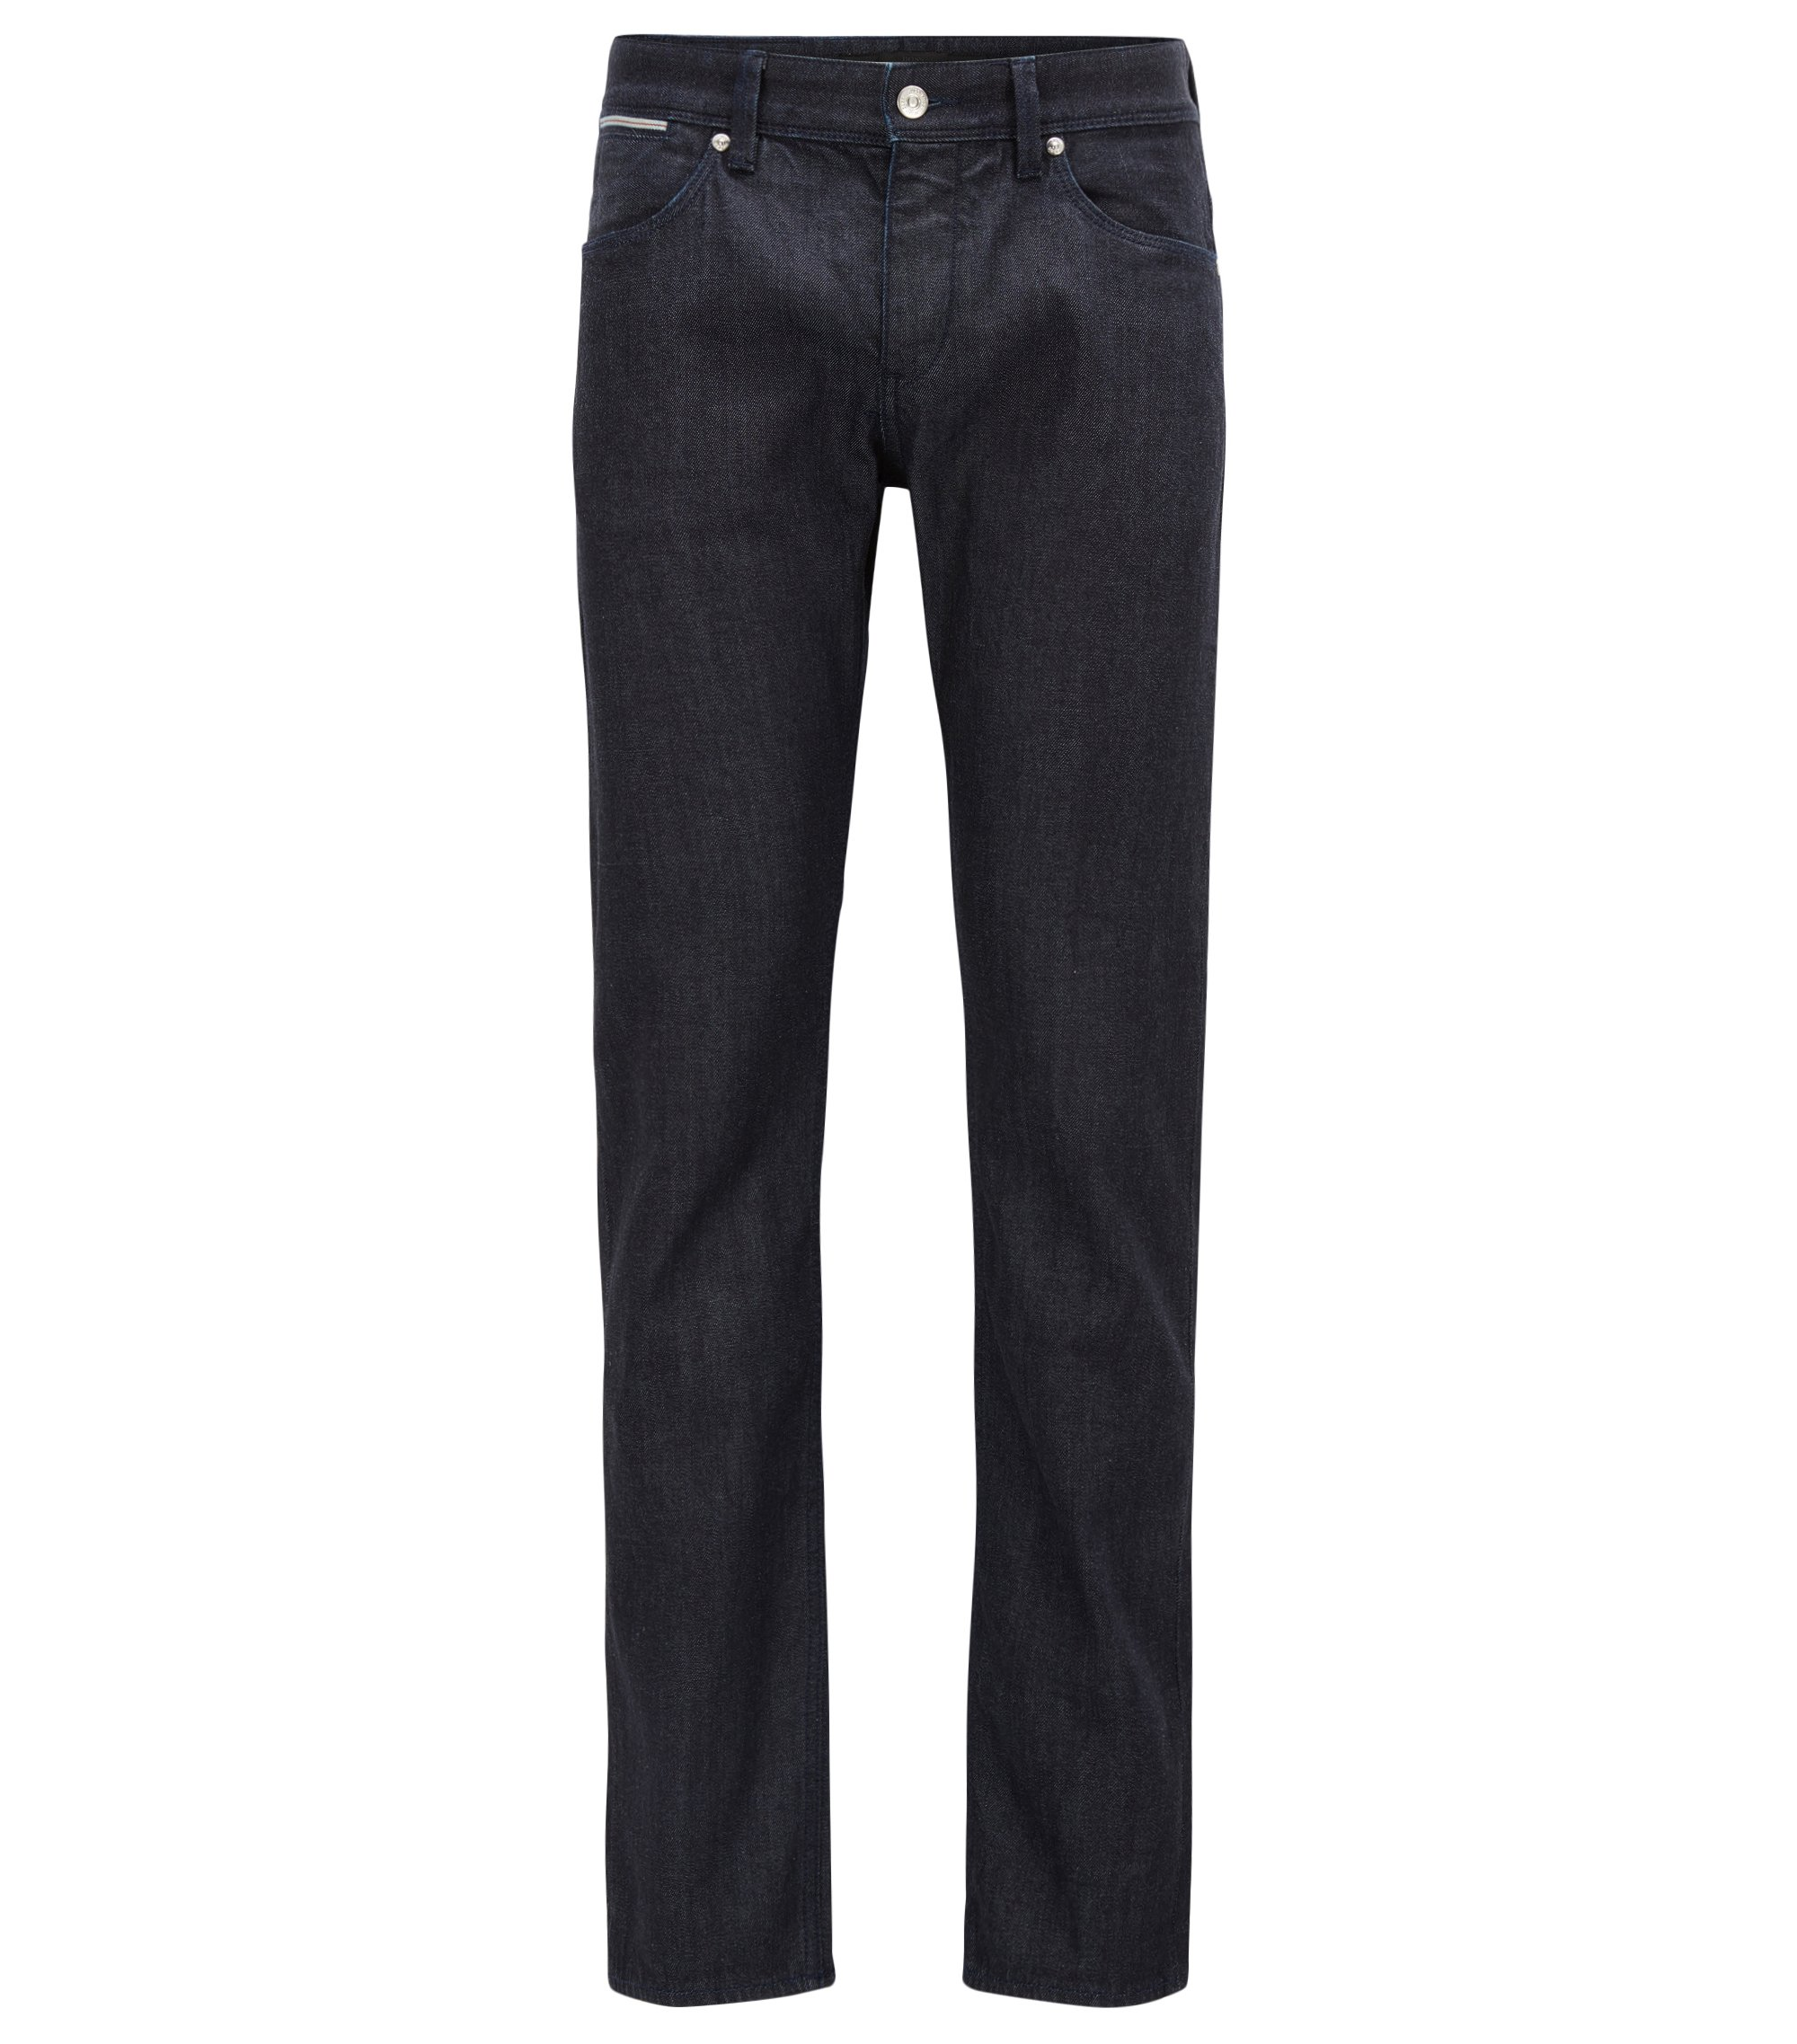 Jeans slim fit in denim elasticizzato con cimosa, Blu scuro